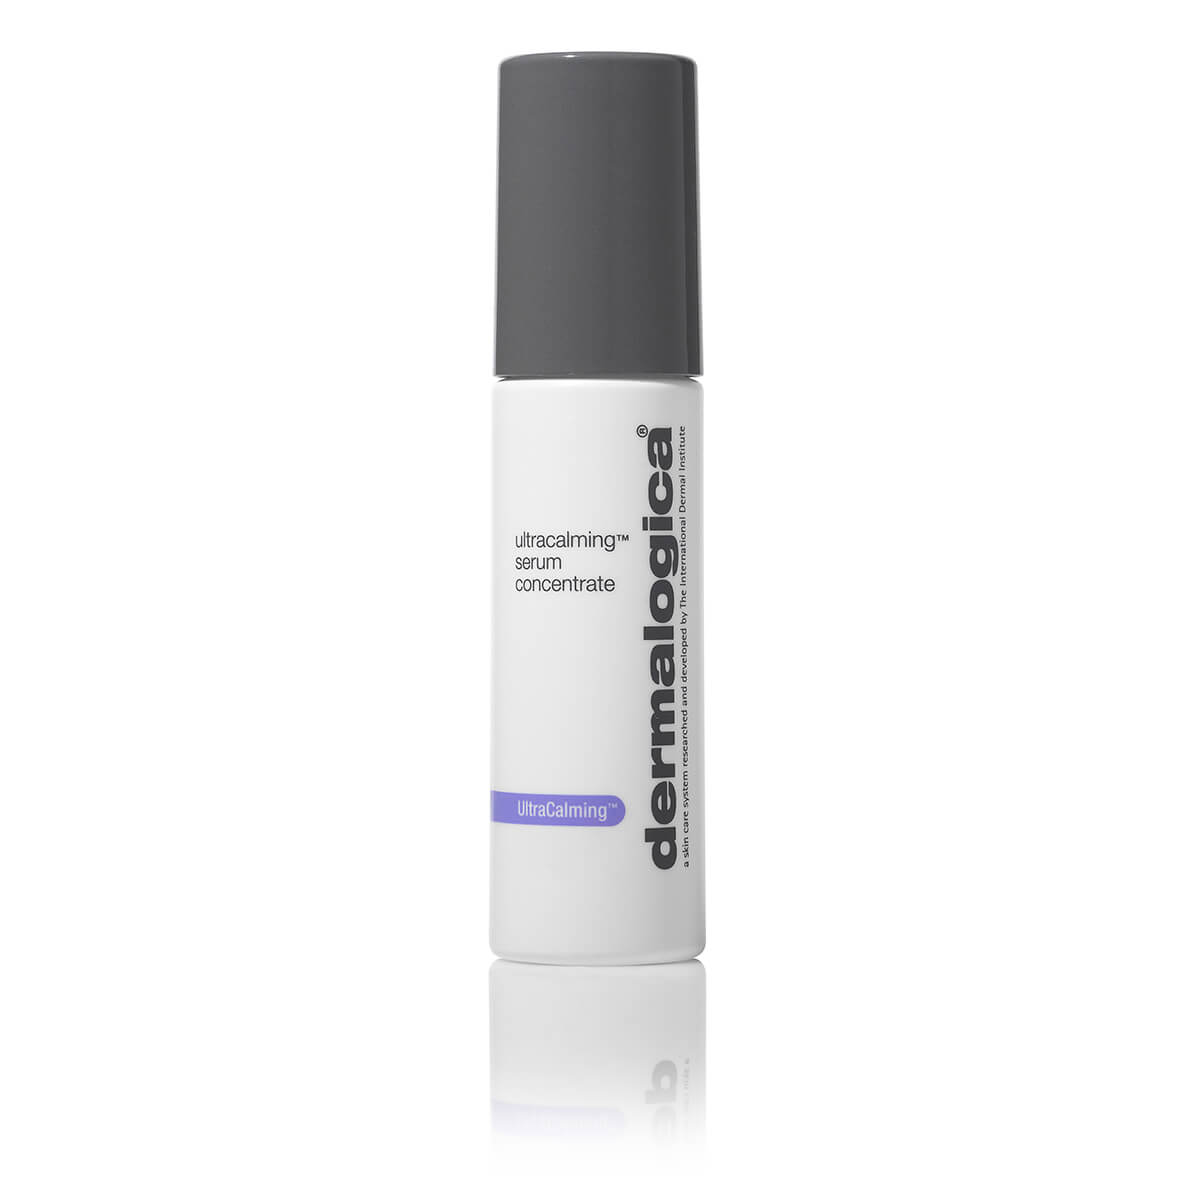 ultracalming serum concentrate (40ml)